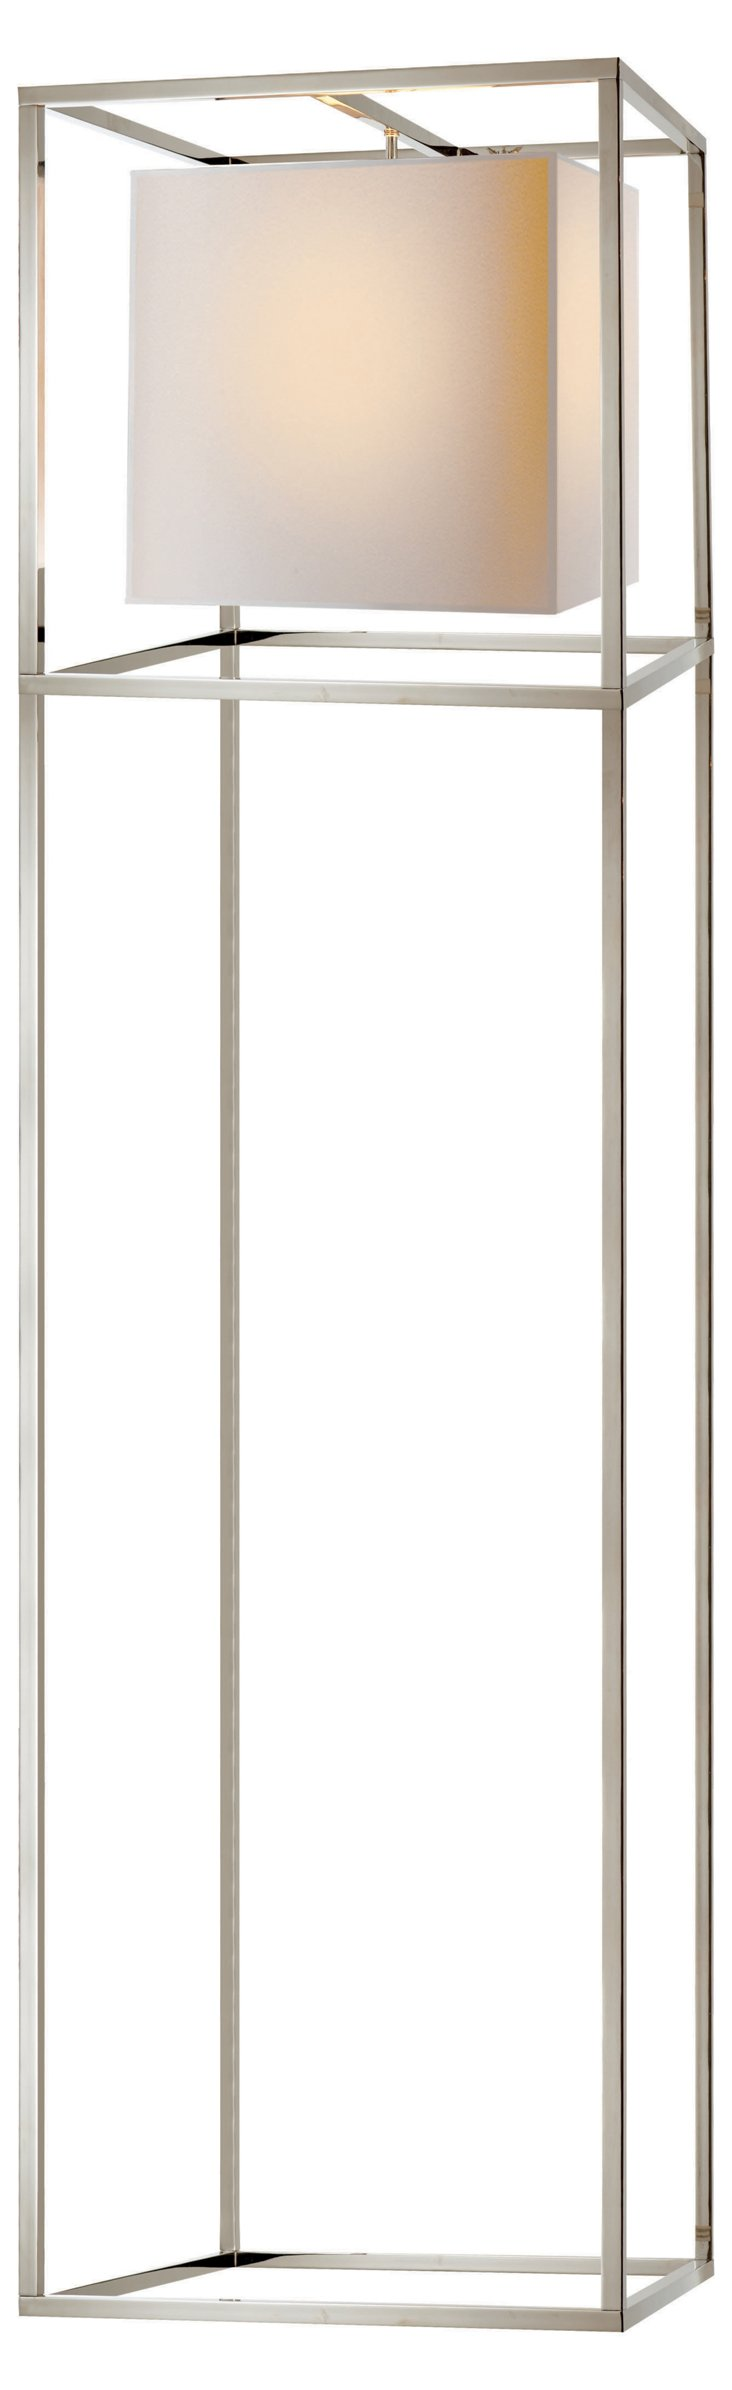 Caged Floor Lamp, Polished Nickel